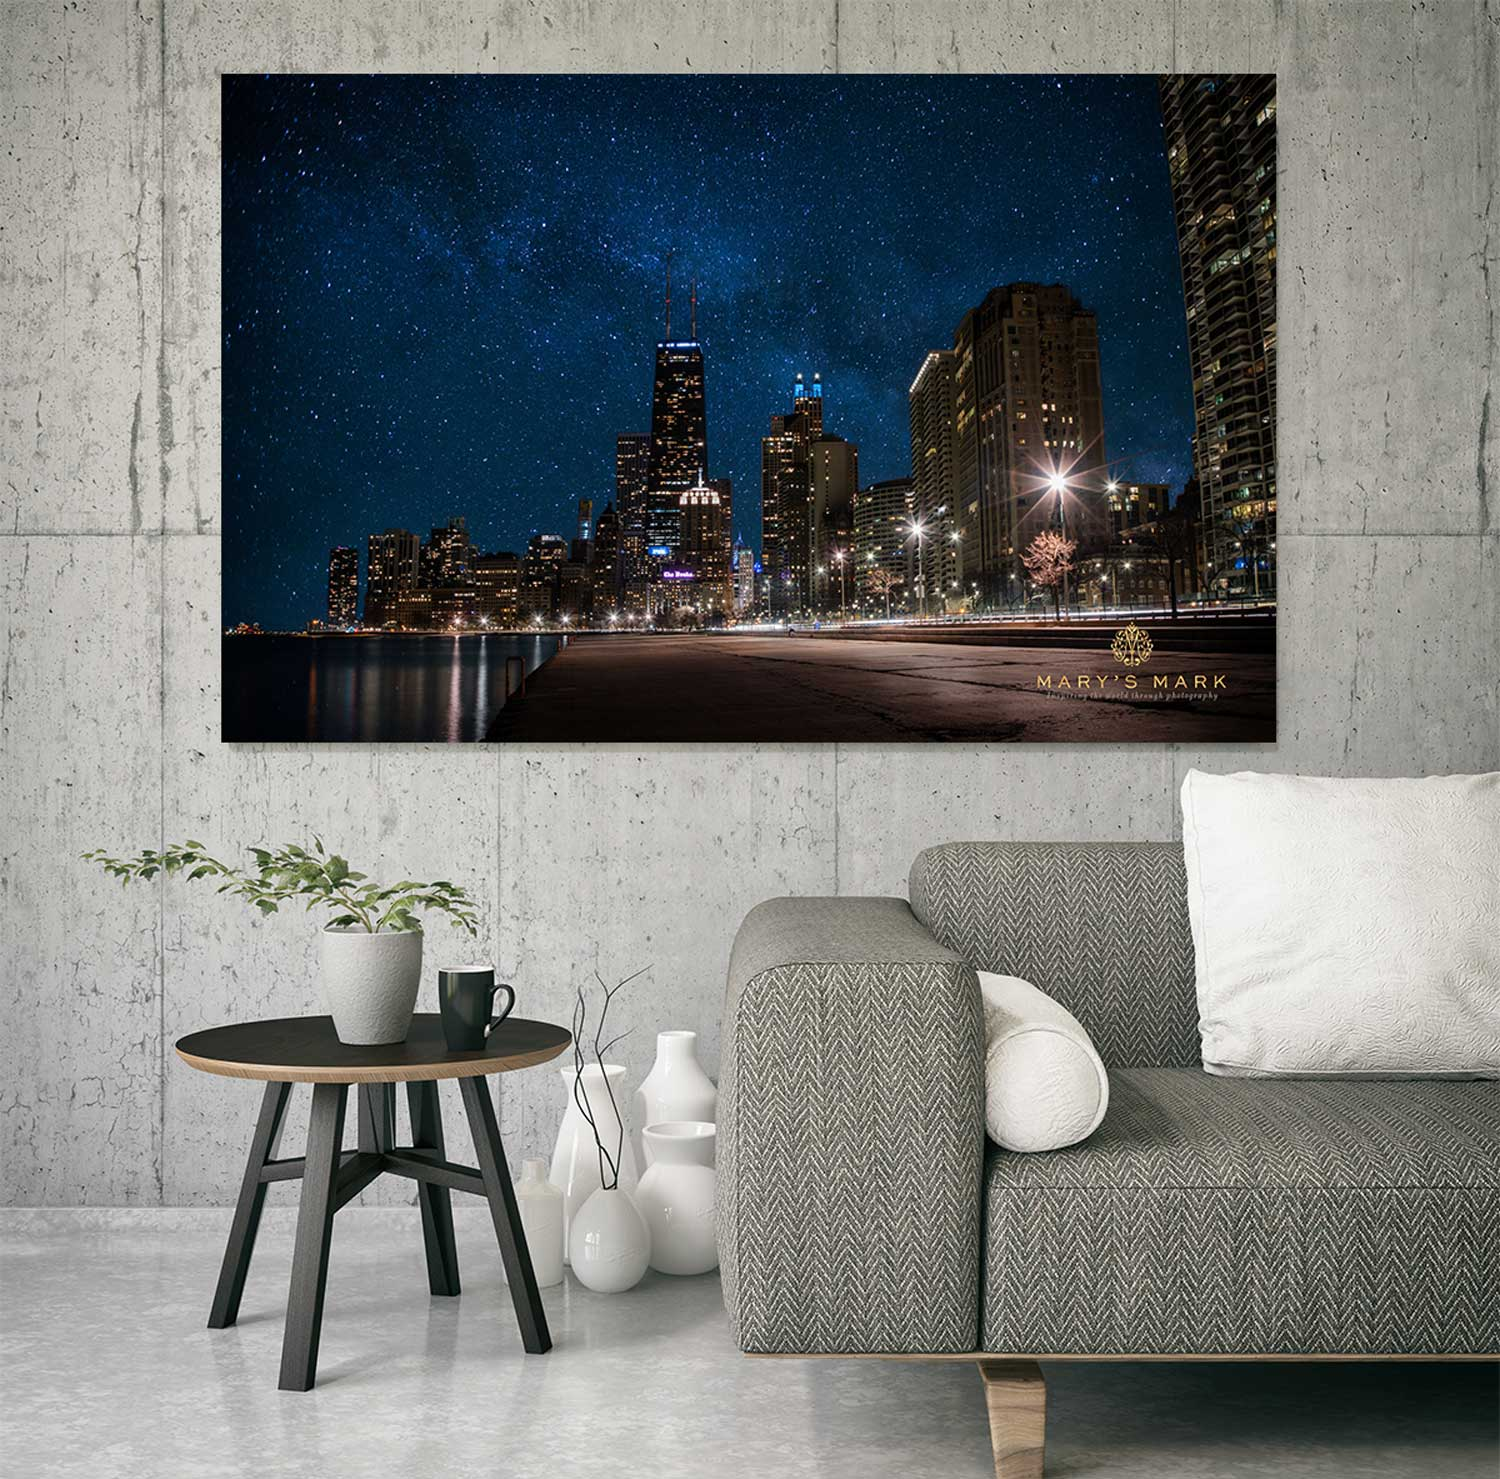 Chicago-Stars-Artwork-Large-Canvas-by-Mary-Parkhill-of-Mary's-Mark-Photography.jpg